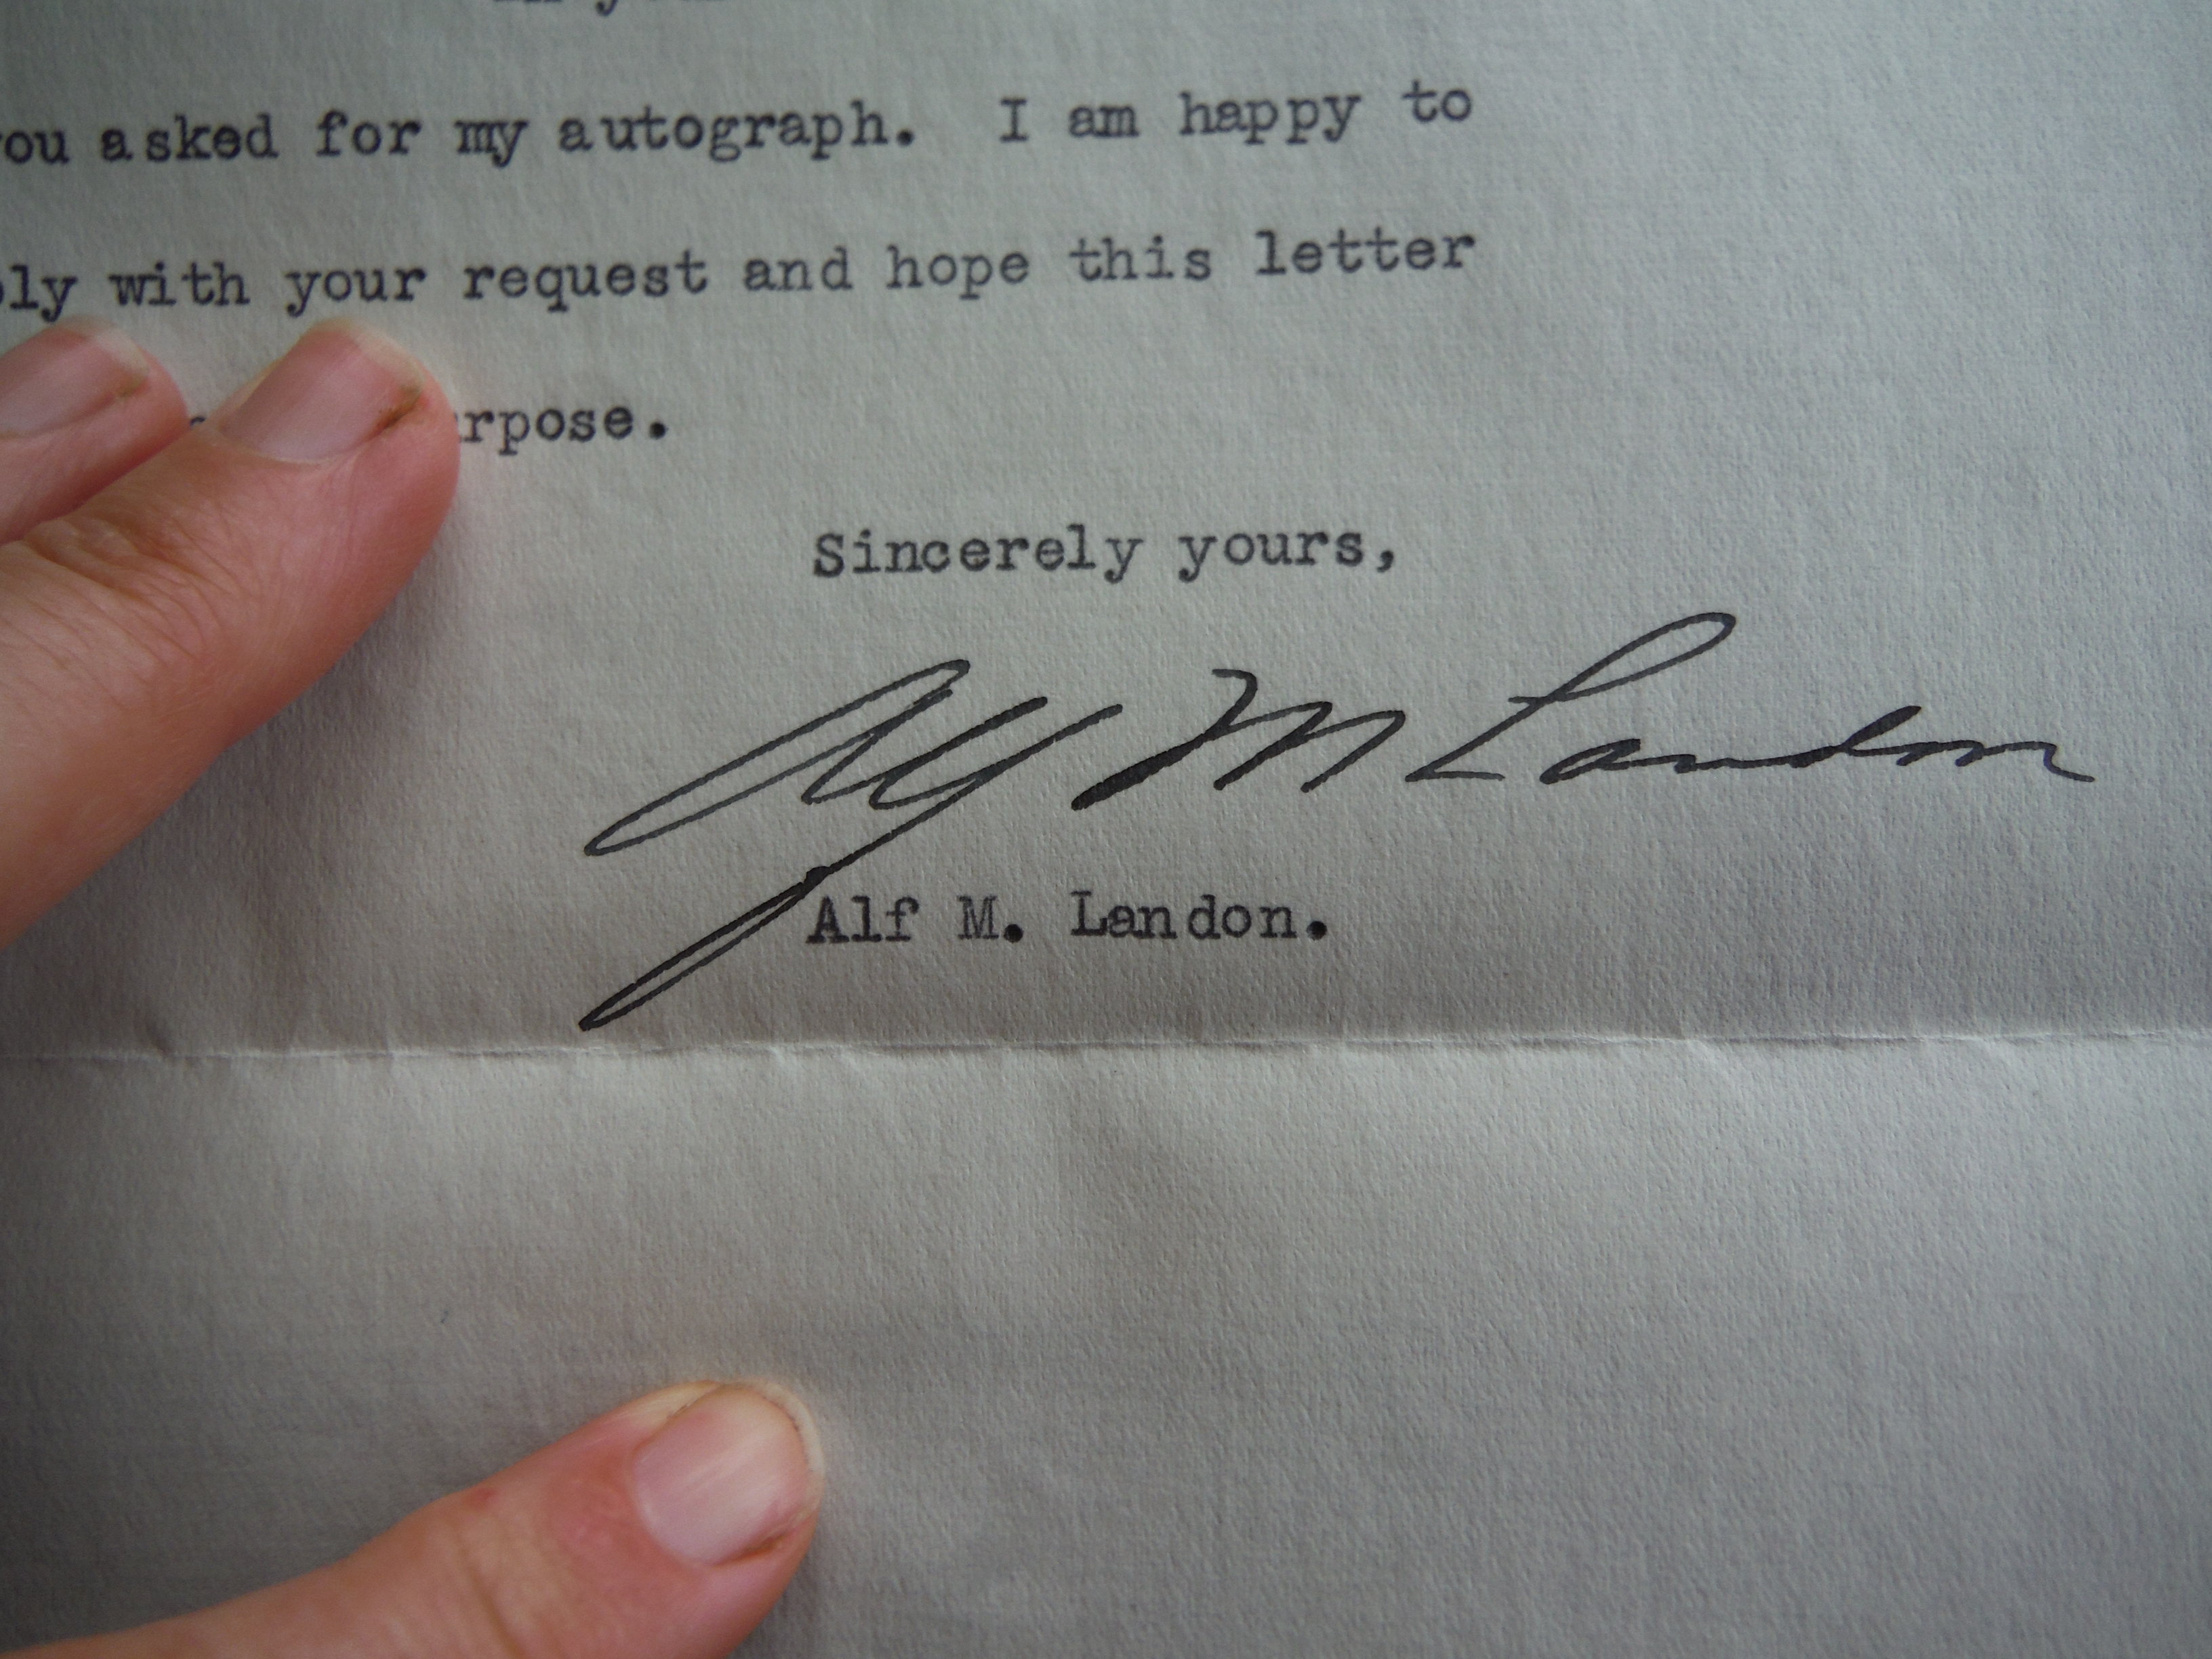 Alf M. Landon (Signed Letter with Envelope) - 1937